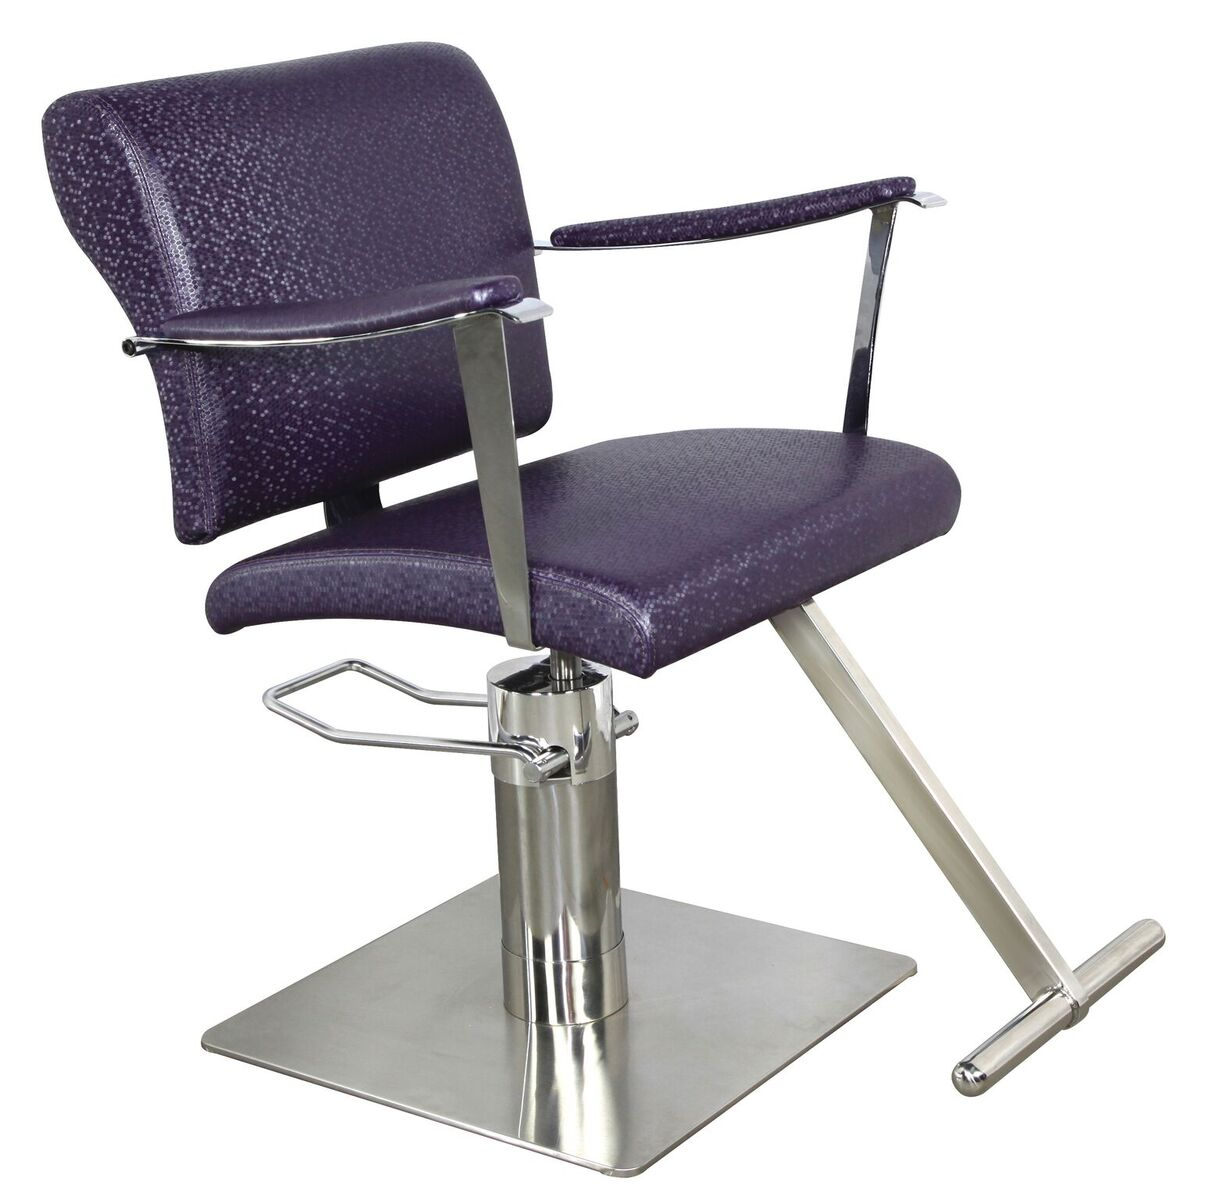 Eliza ez 60 one world inspired salon styling chair in 19 for Colored salon chairs